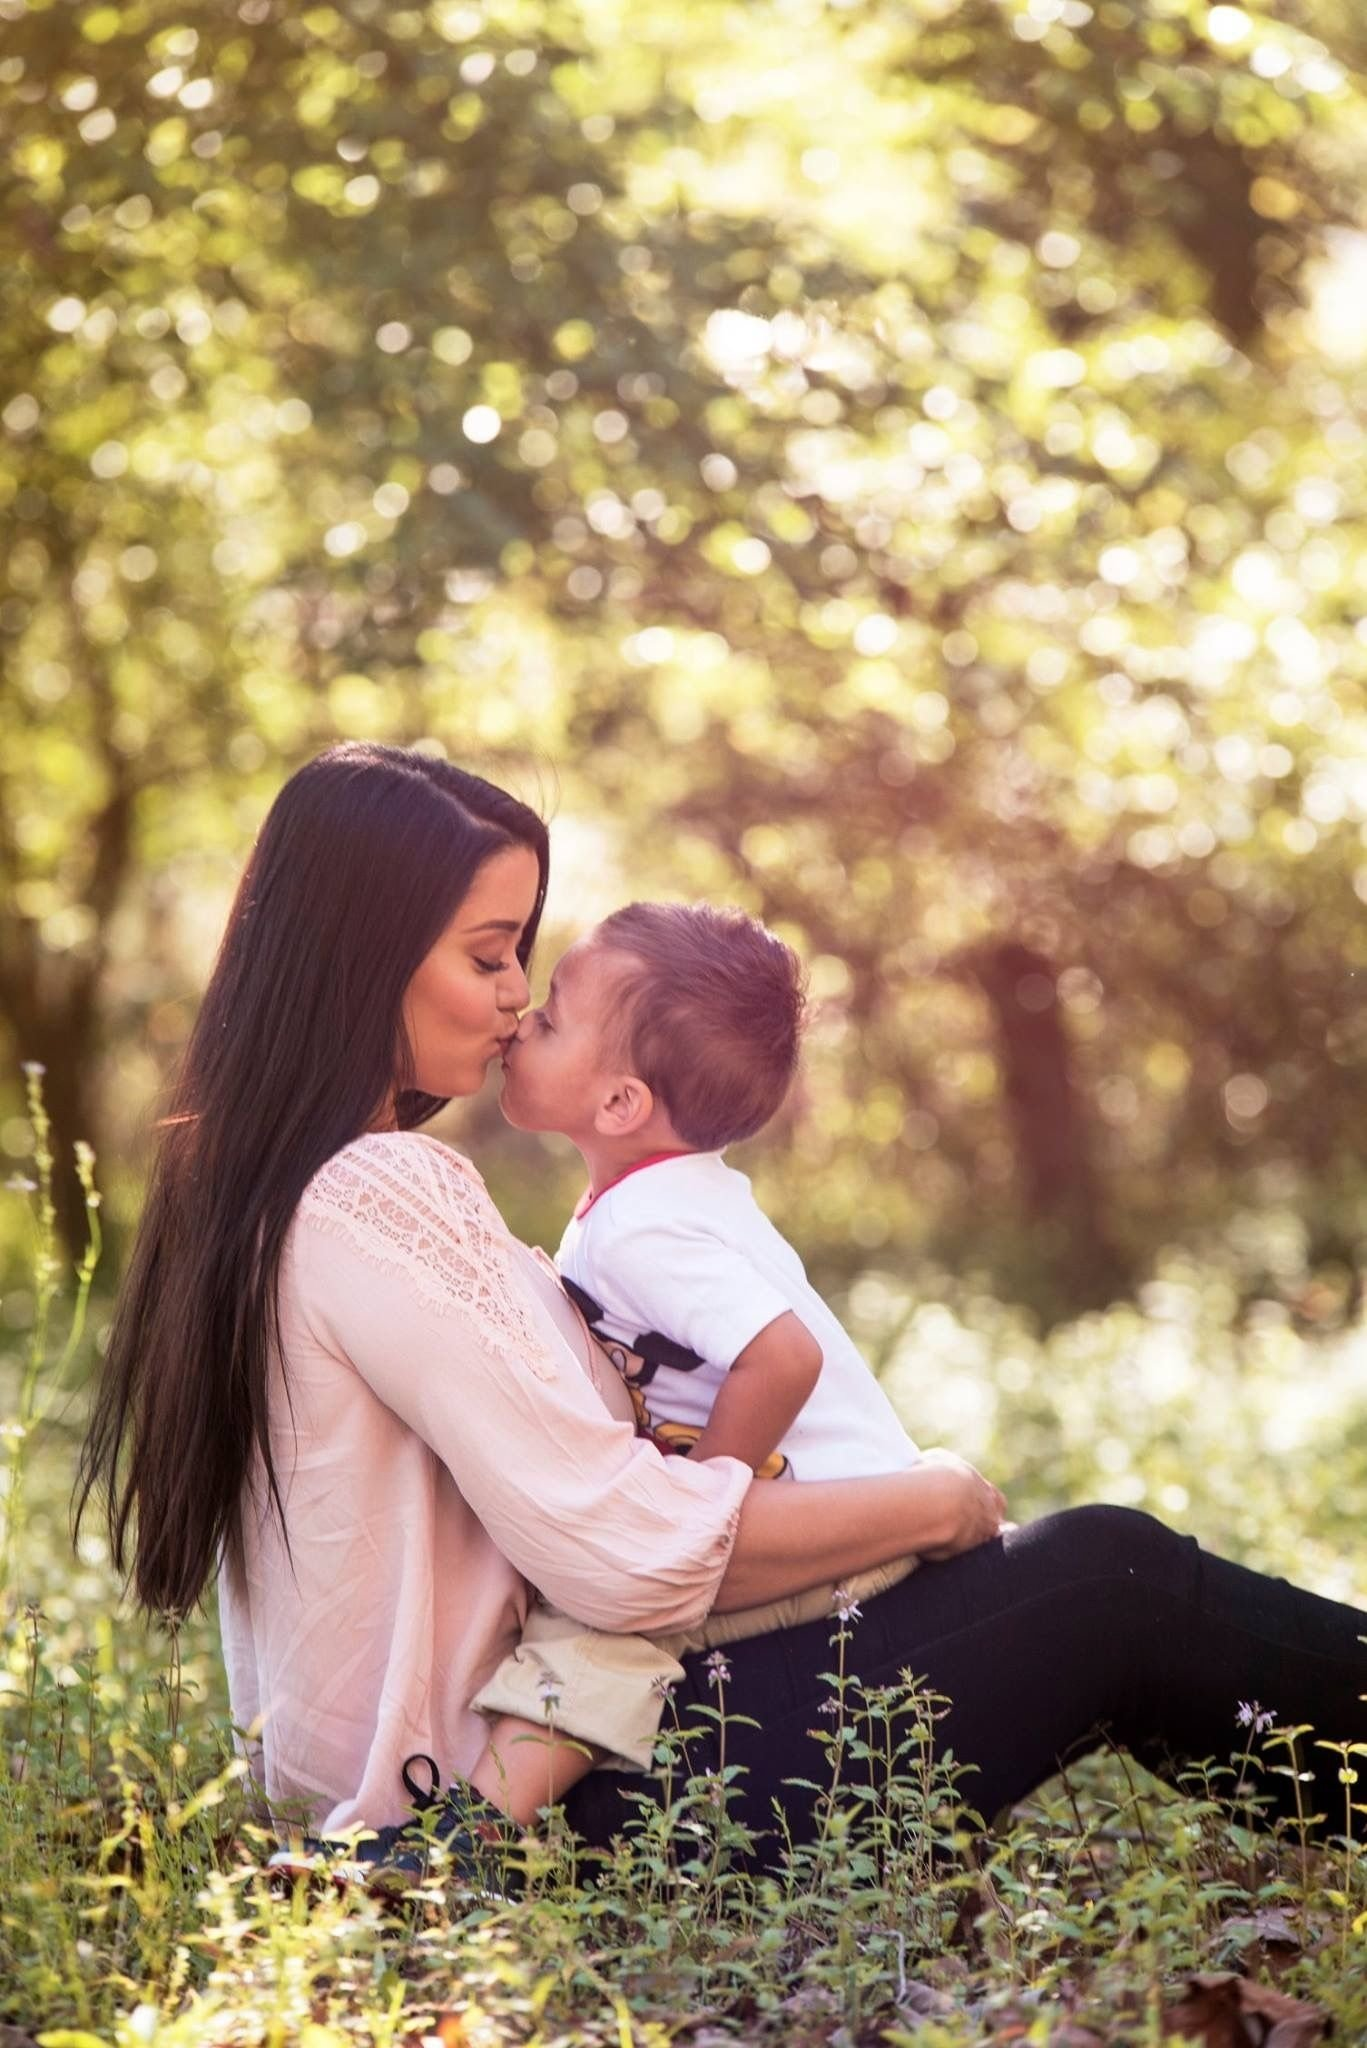 10 Wonderful Mother And Son Photo Ideas mother and son photos second birthday pictures first birthday 1 2020